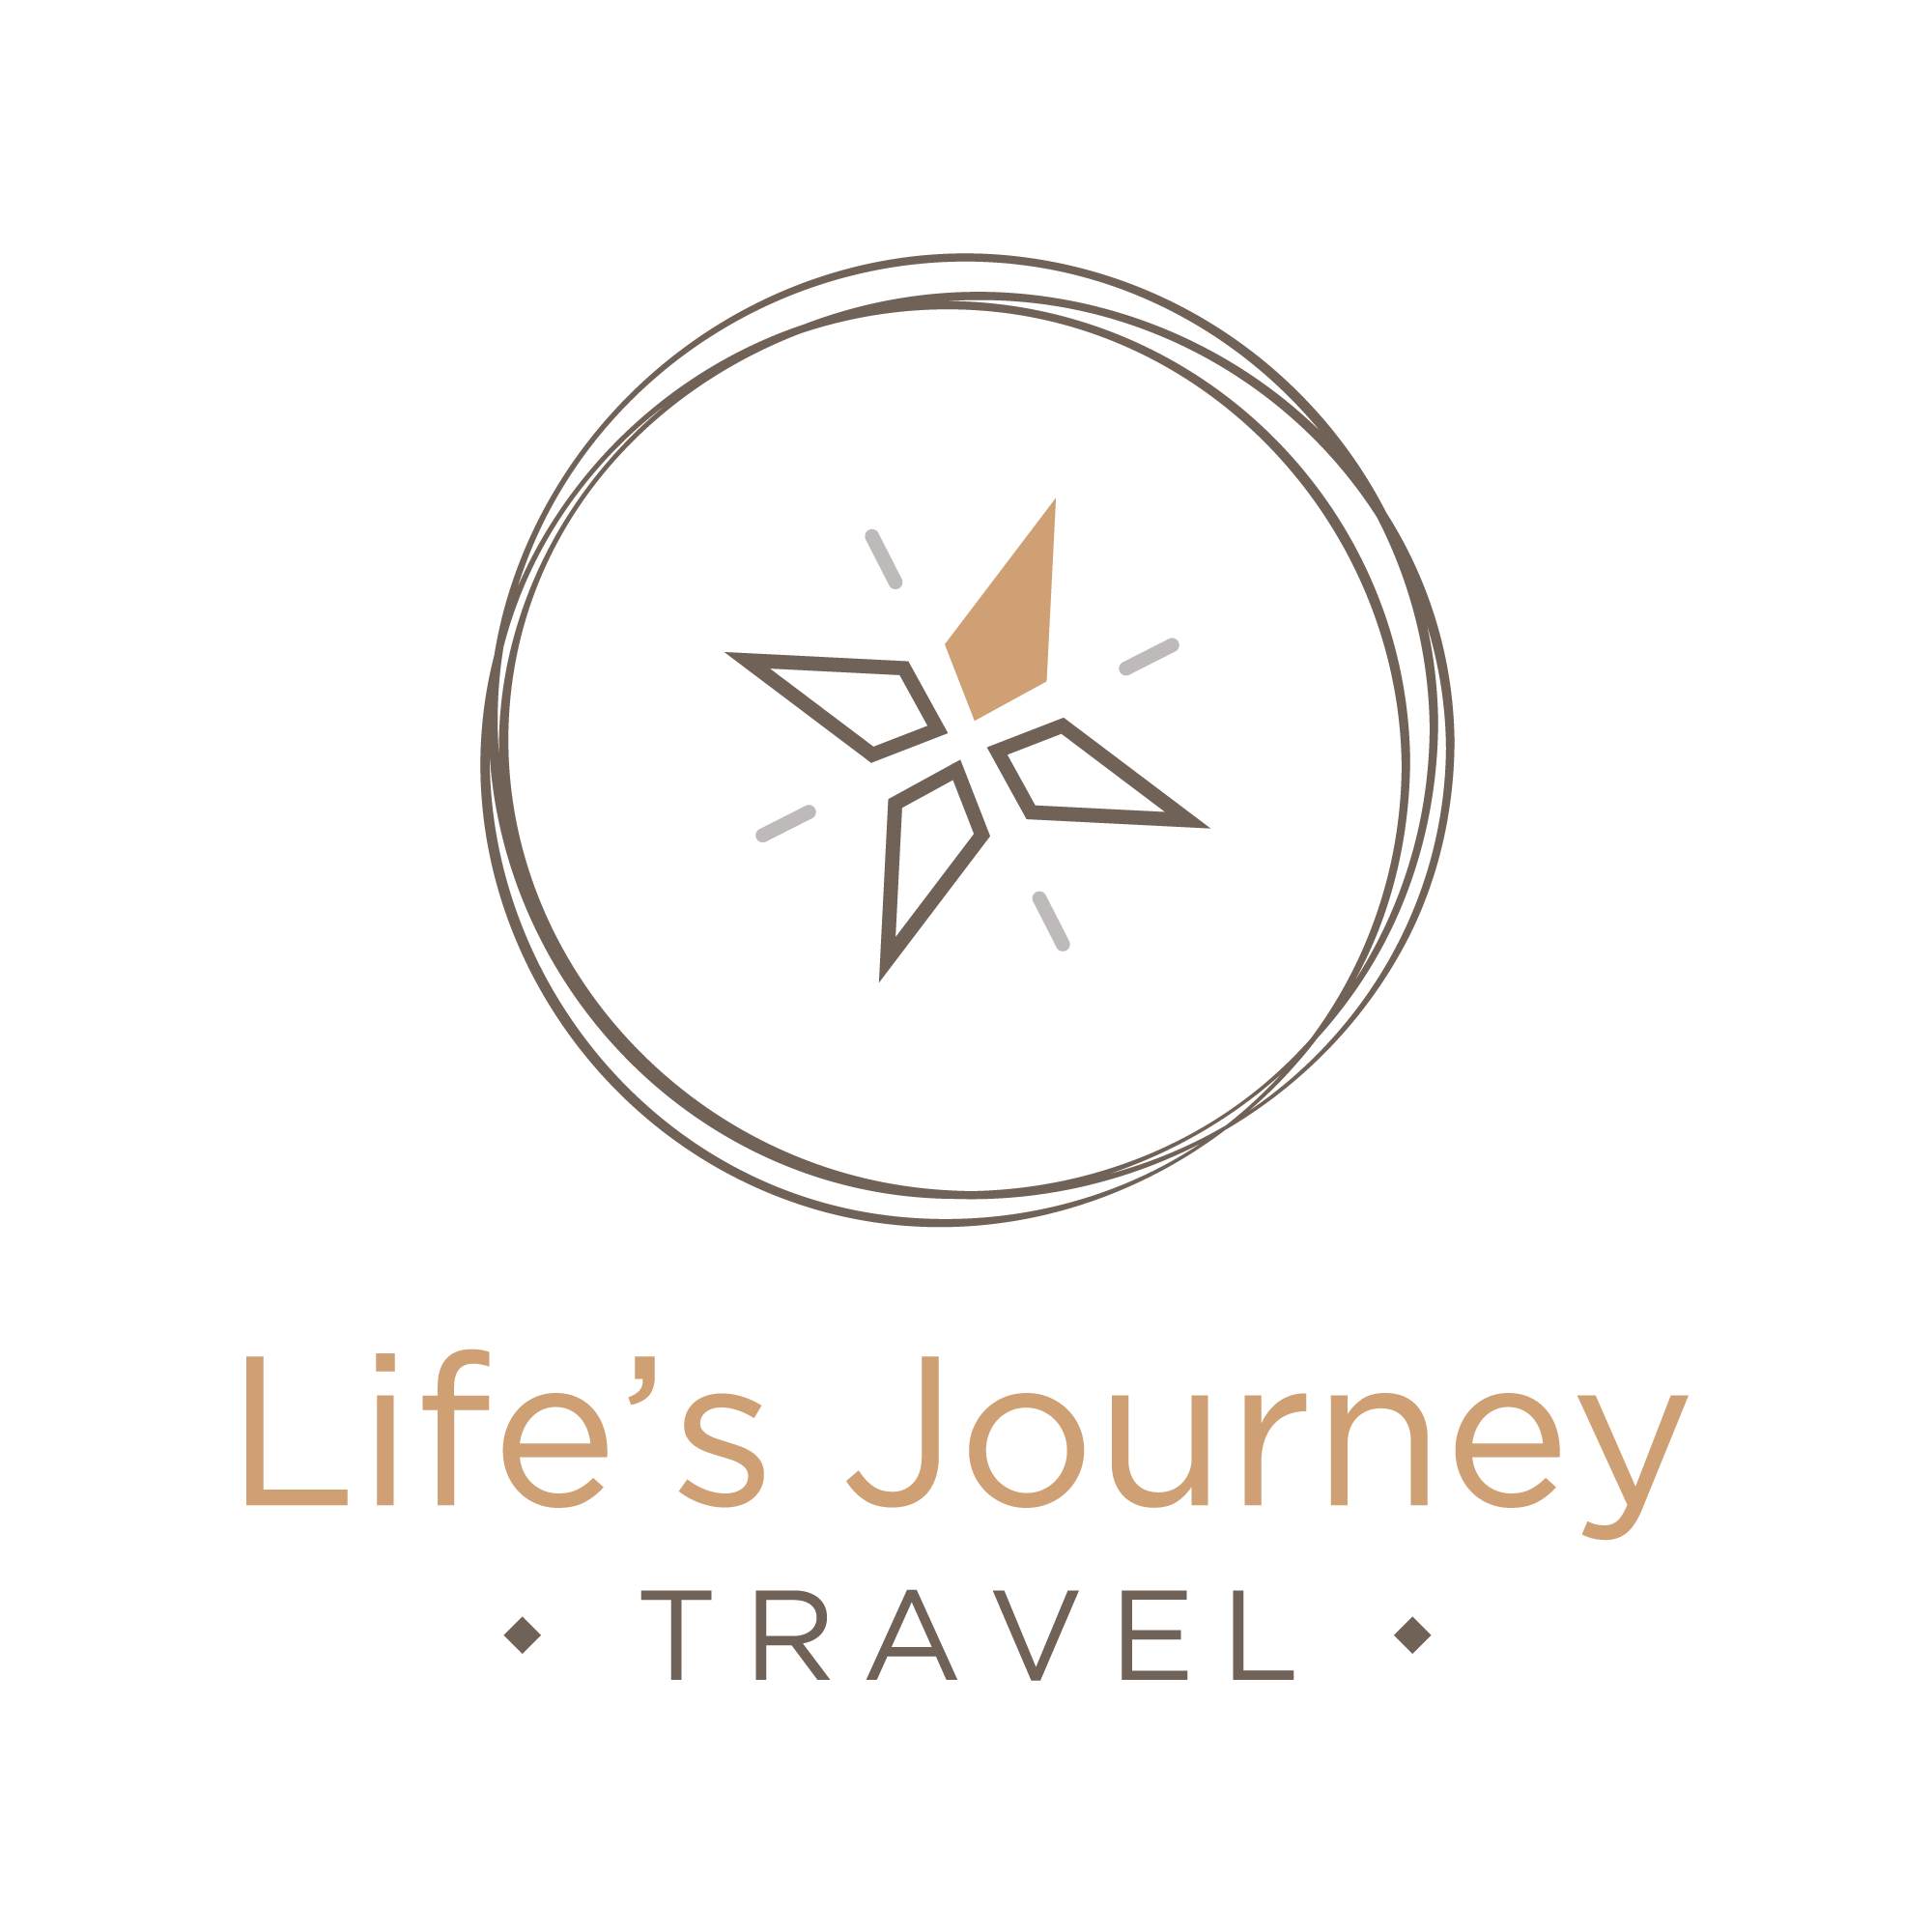 Life's journey travel needs a design leader!